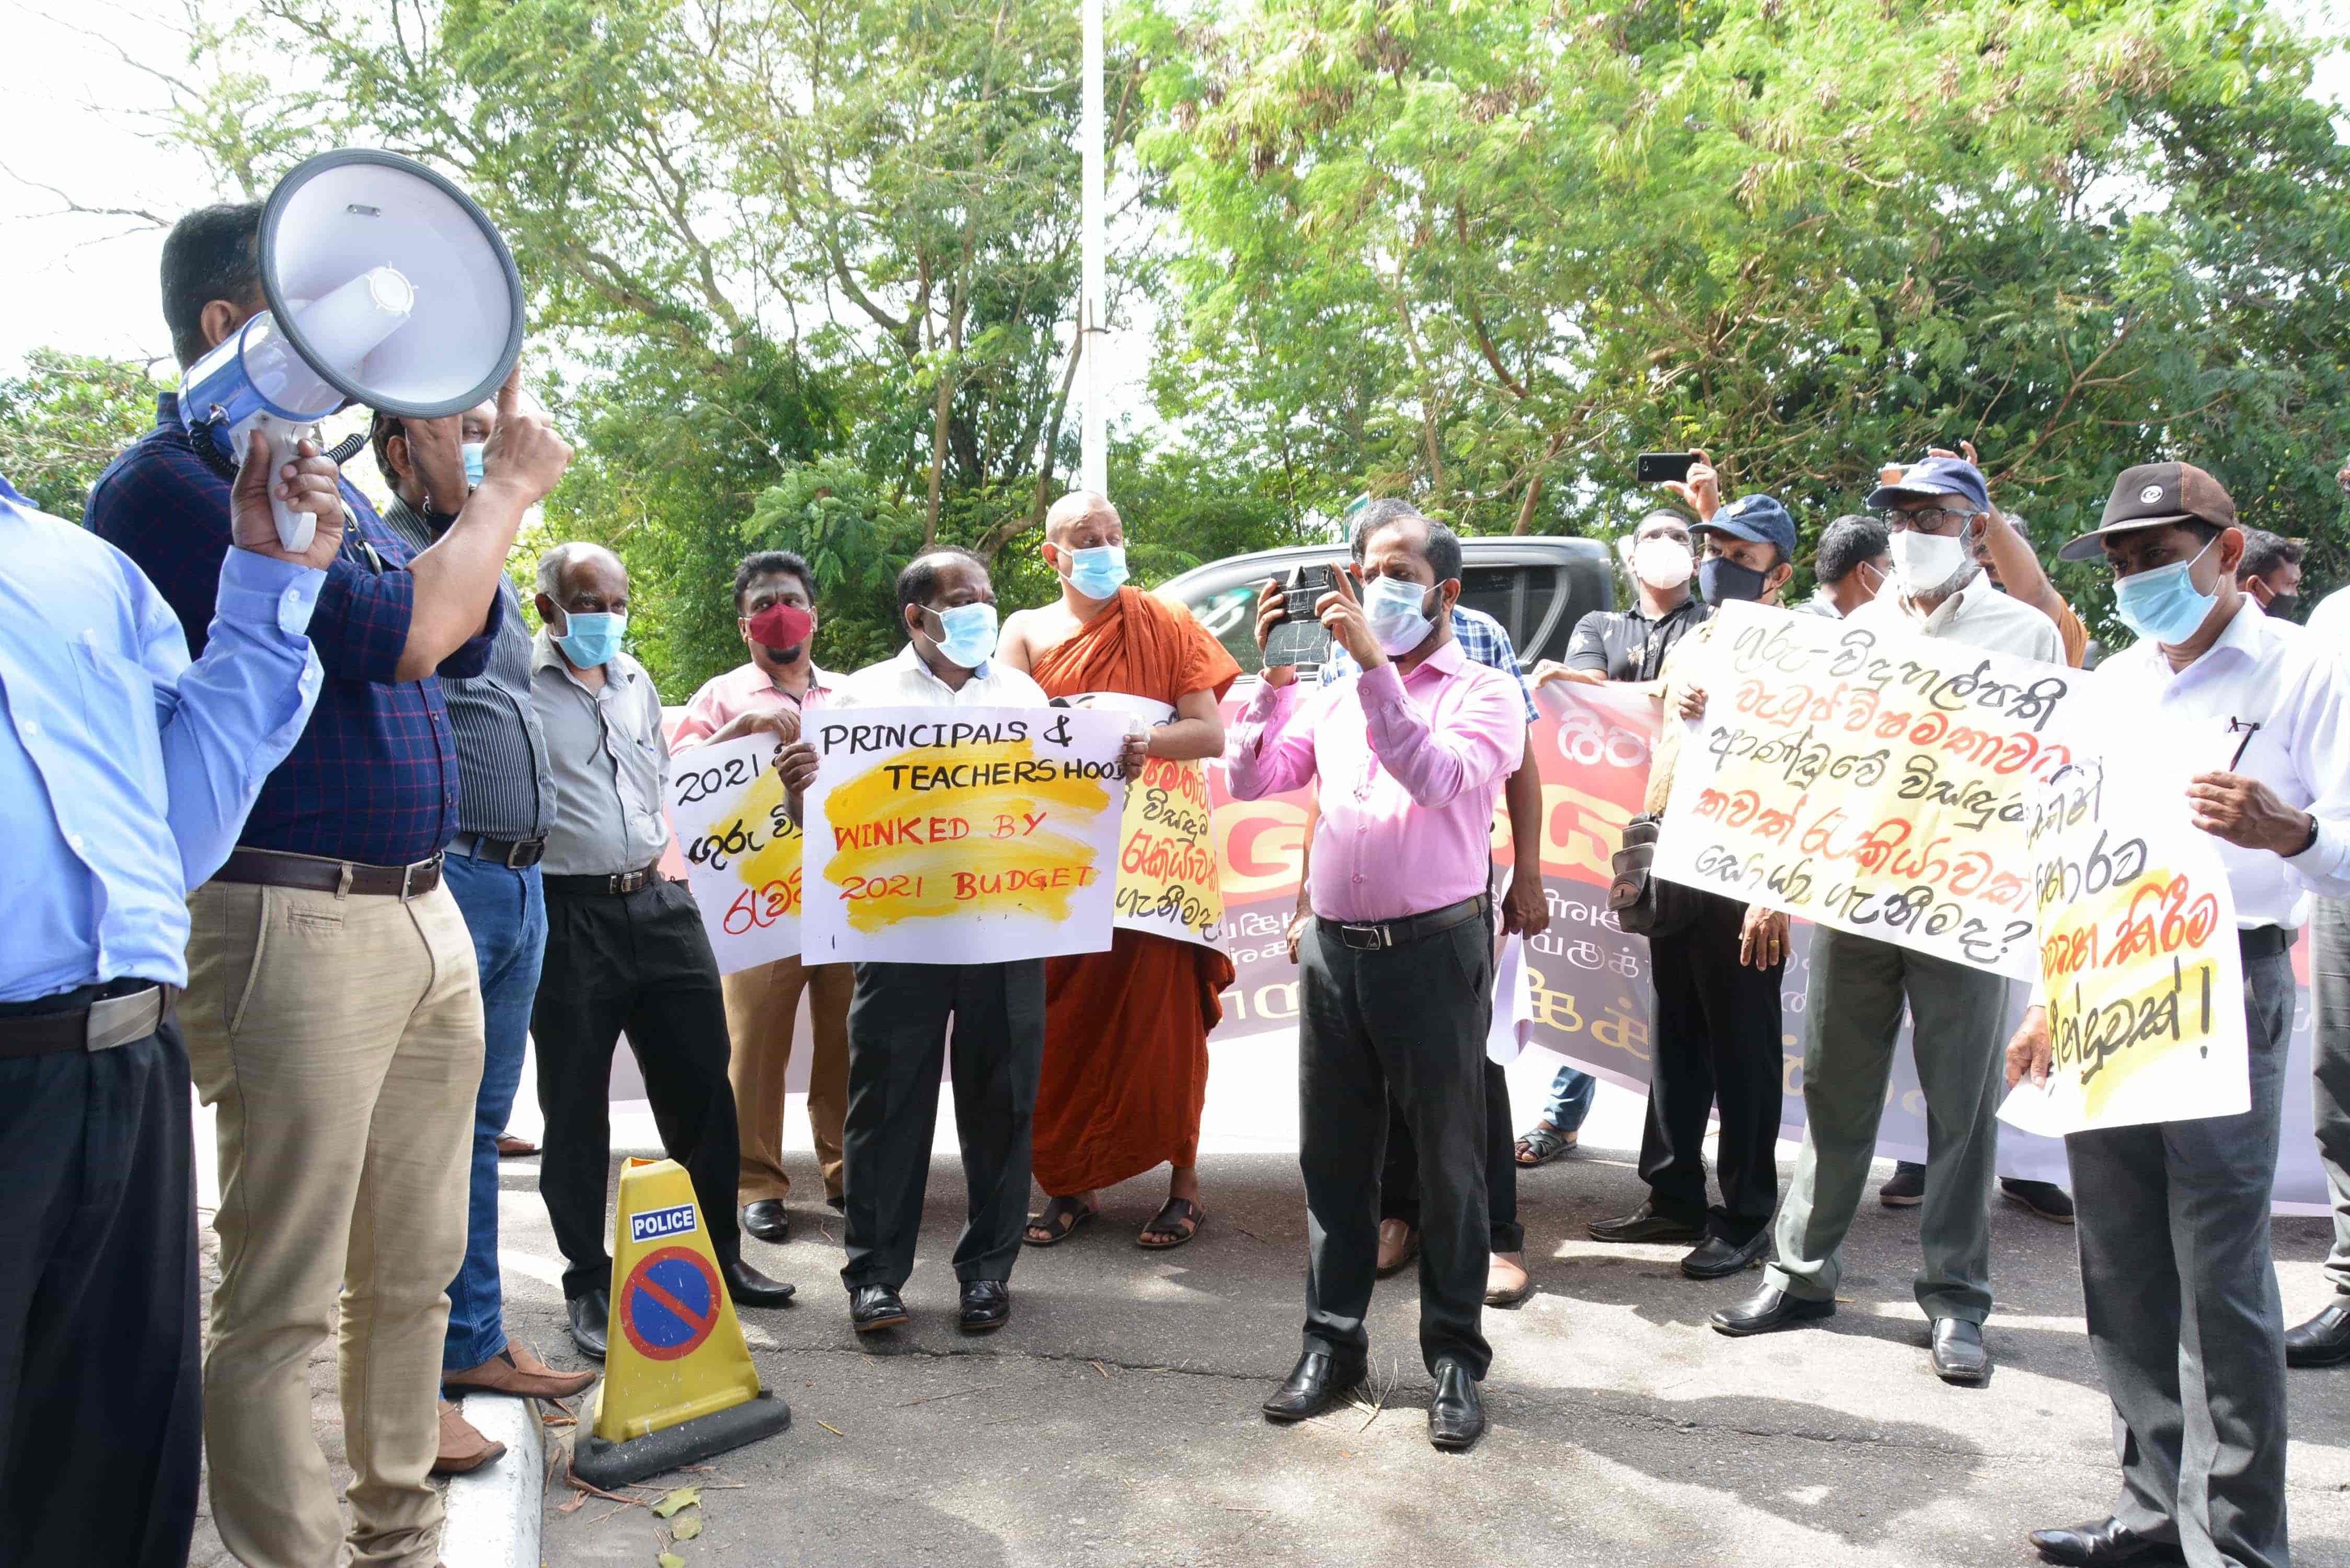 The protest to request principal-teacher salaries as promised in the budget